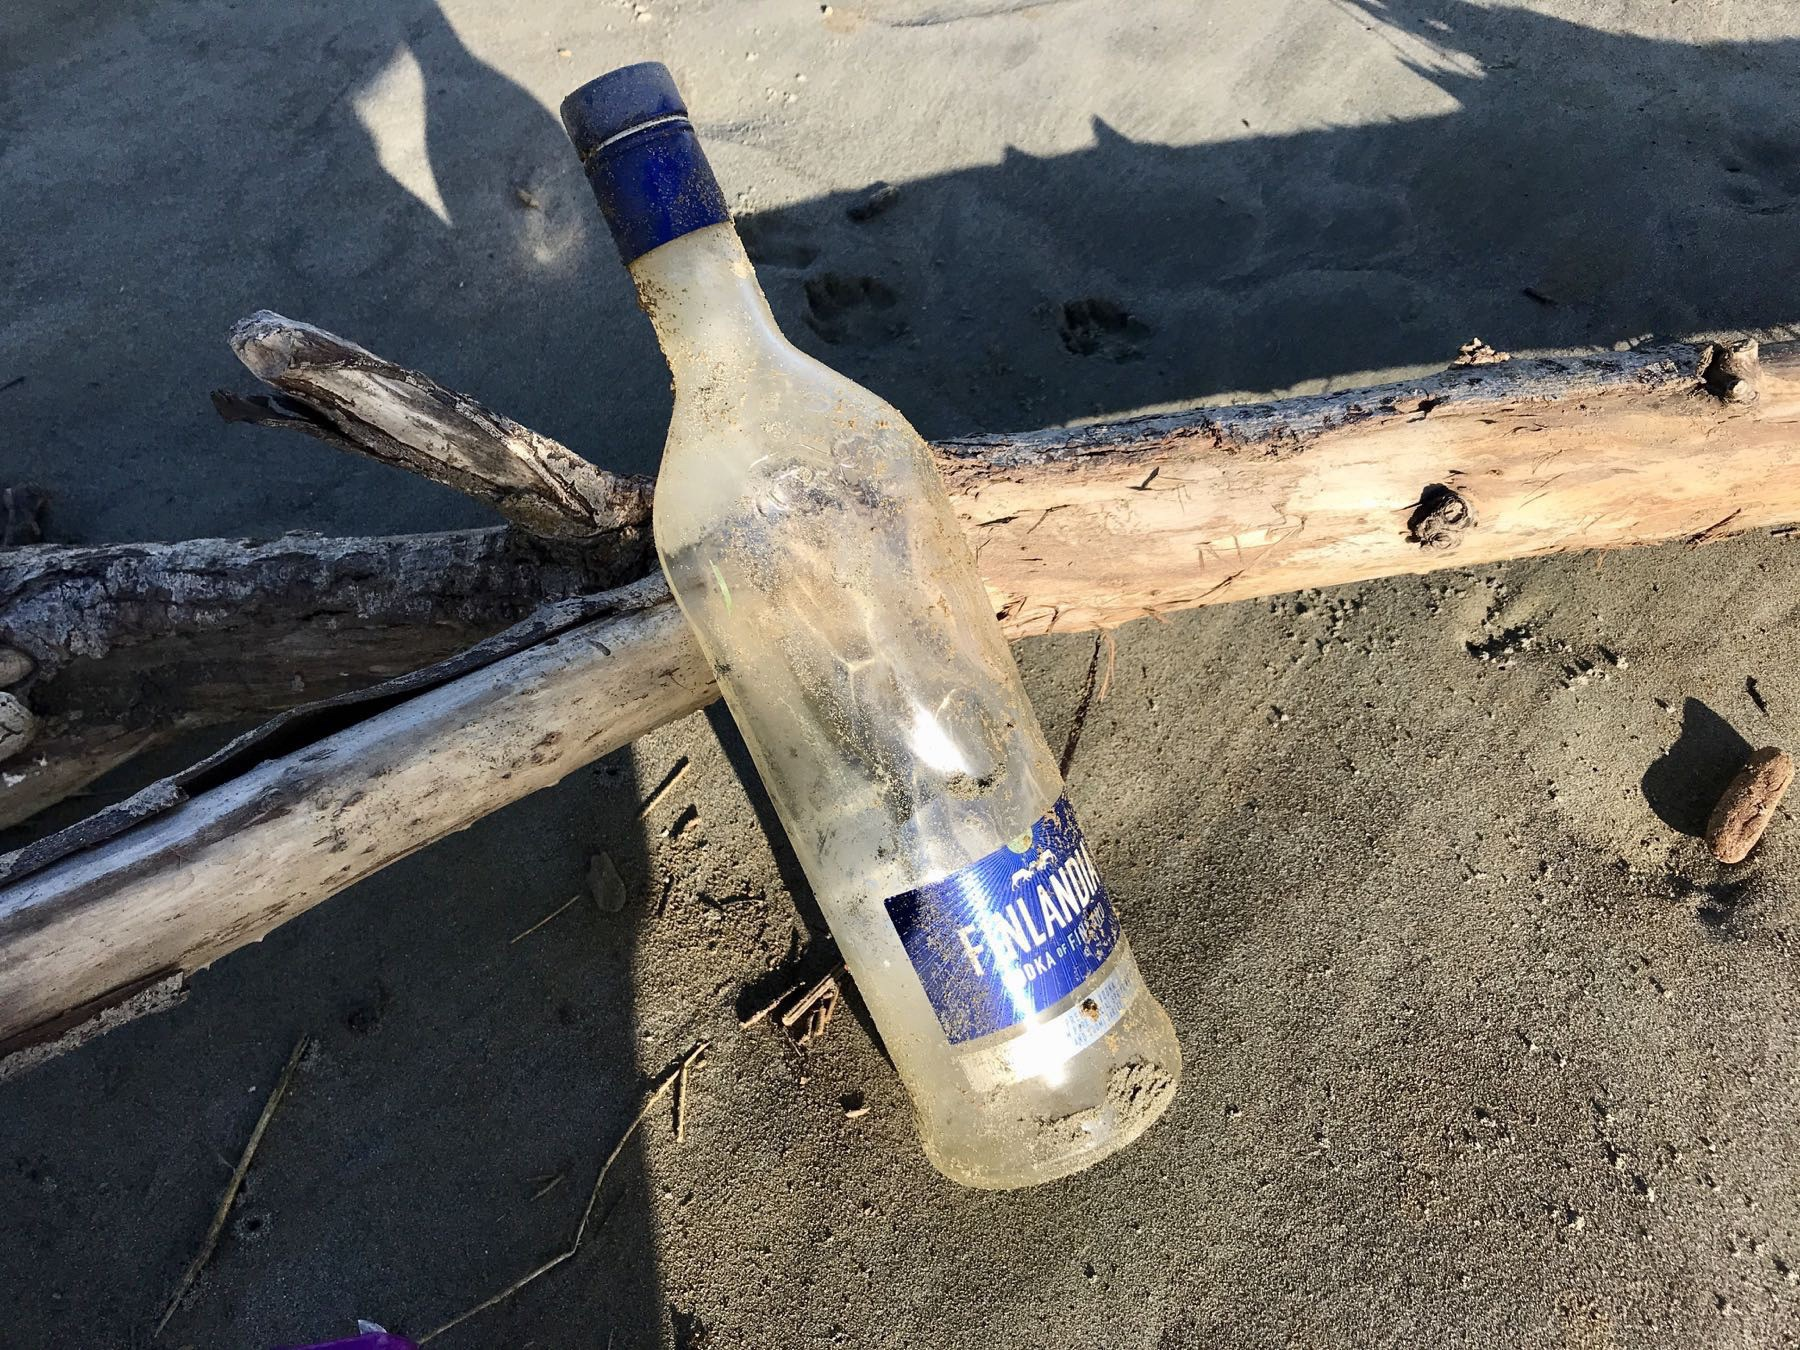 Empty bottle leaning against driftwood.